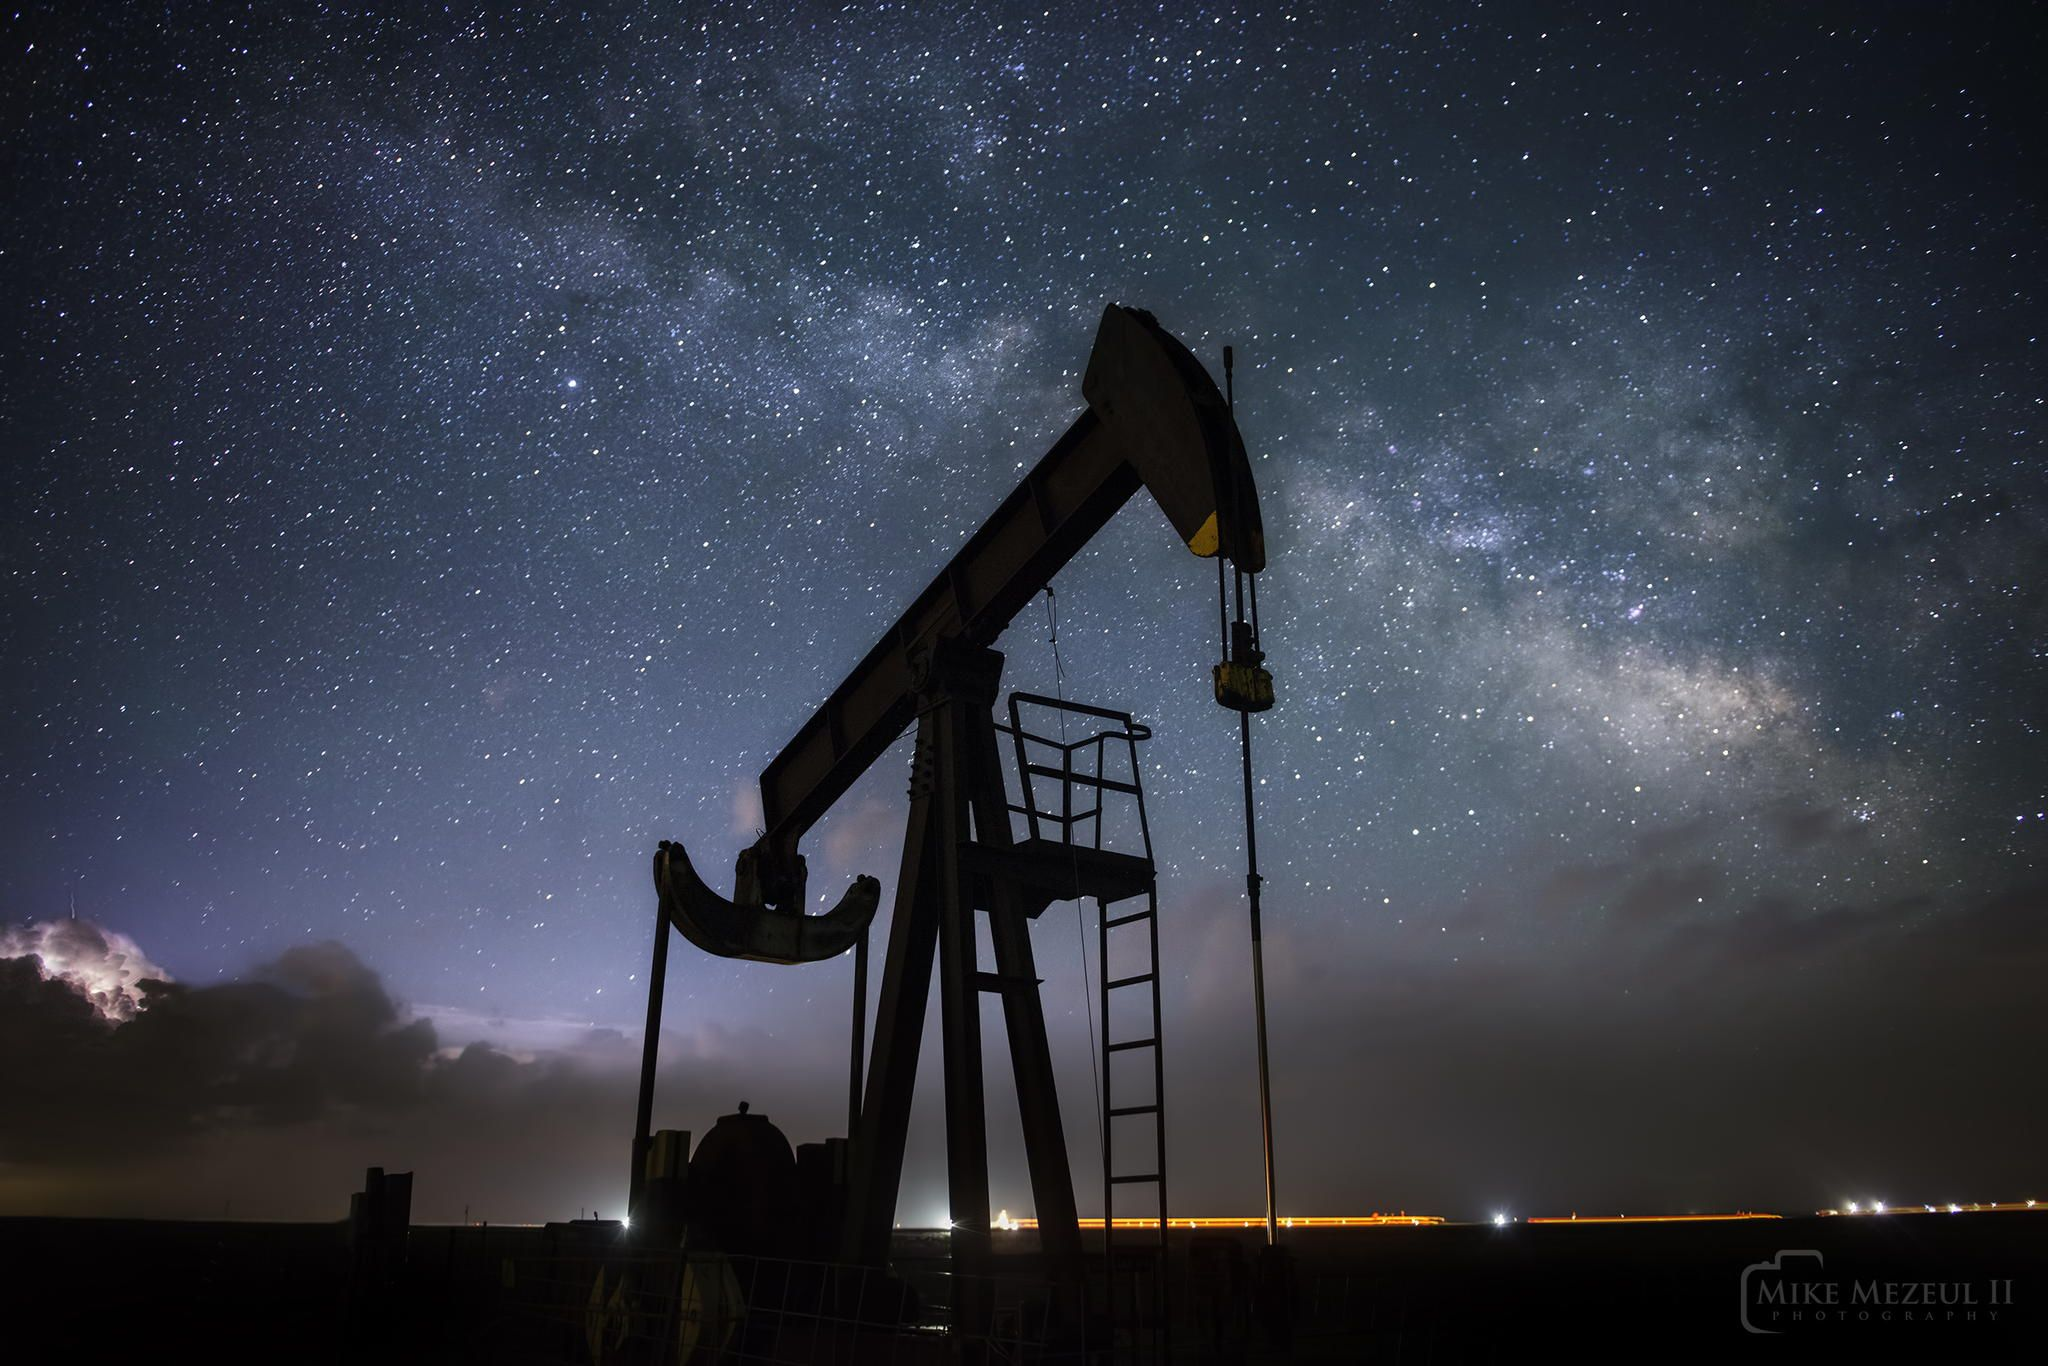 An oil pumpjack beneath the Milky Way and a distant lightning storm. by Mike Mezeul II on 500px